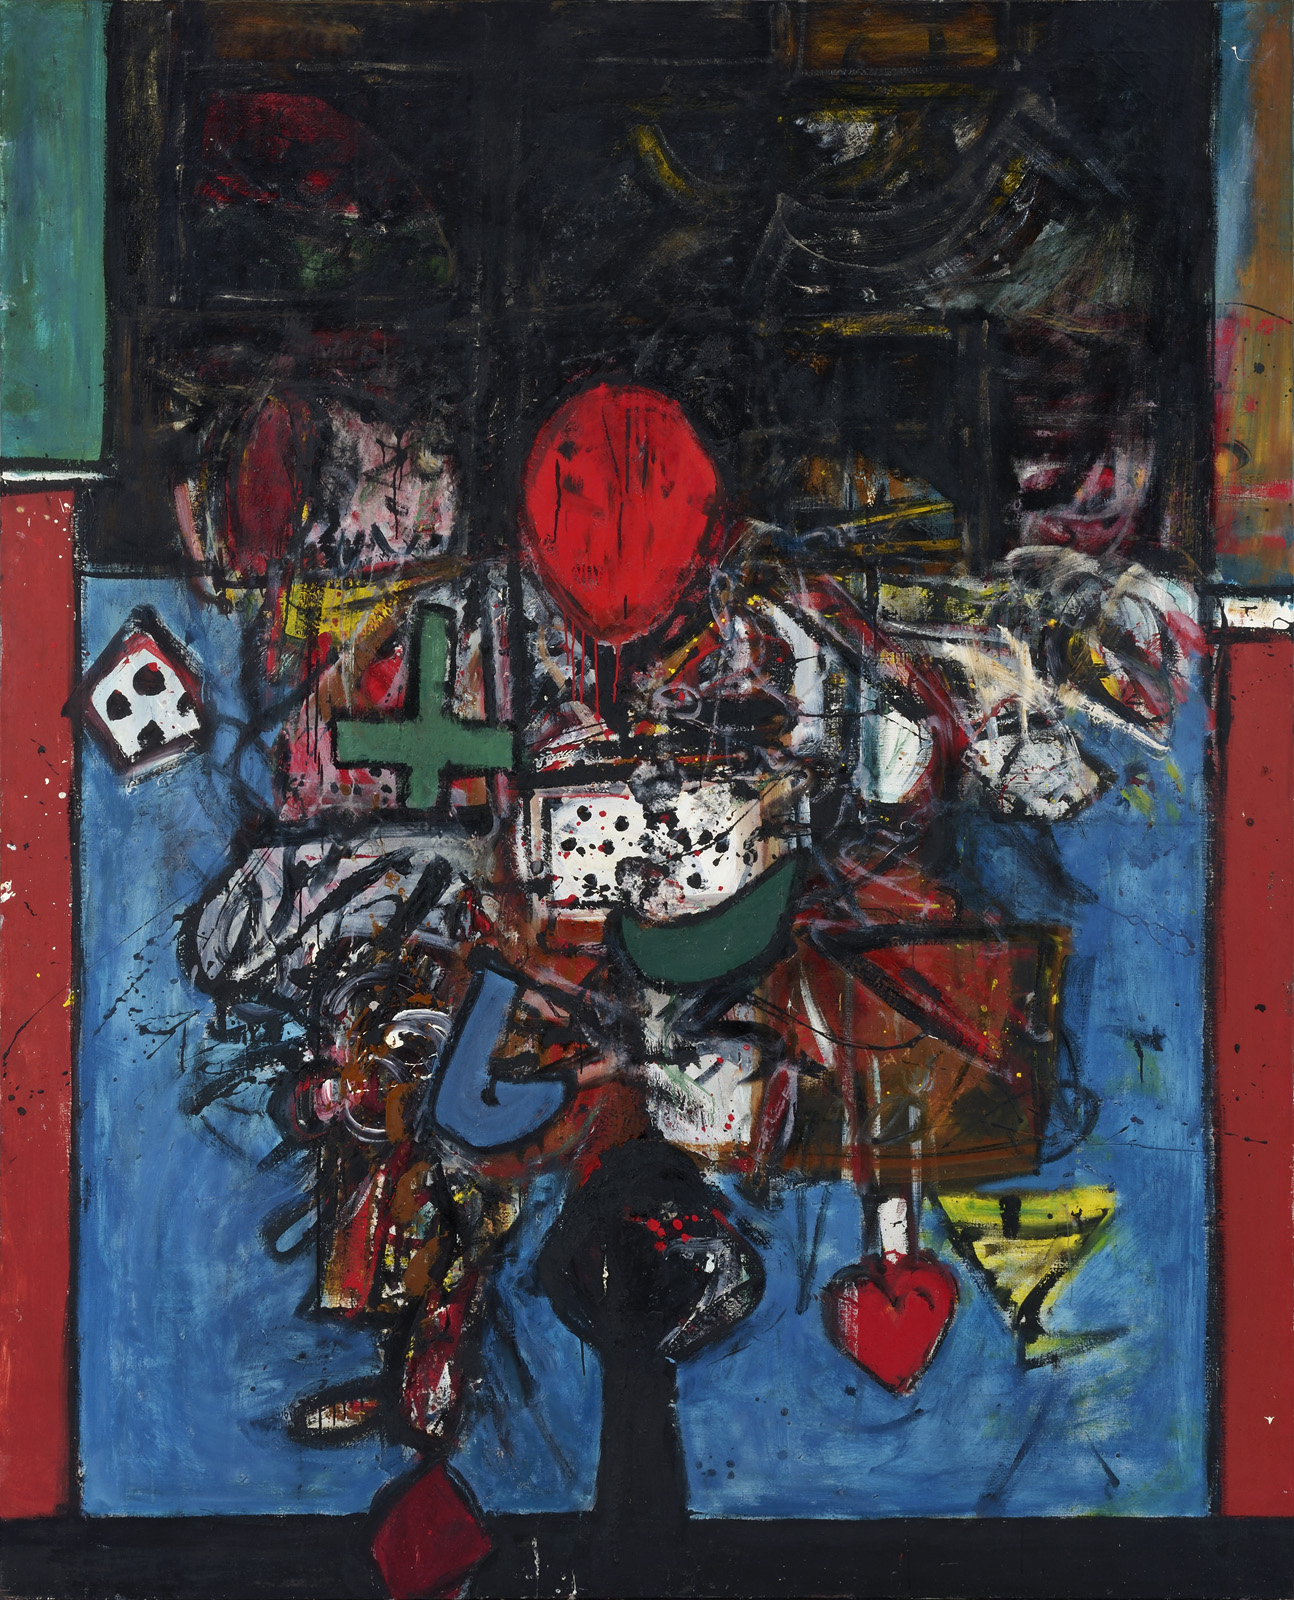 Alan Davie, Monk's Vision, 1958, oil on canvas, 213.5 x 173.5 cm (courtesy of Al